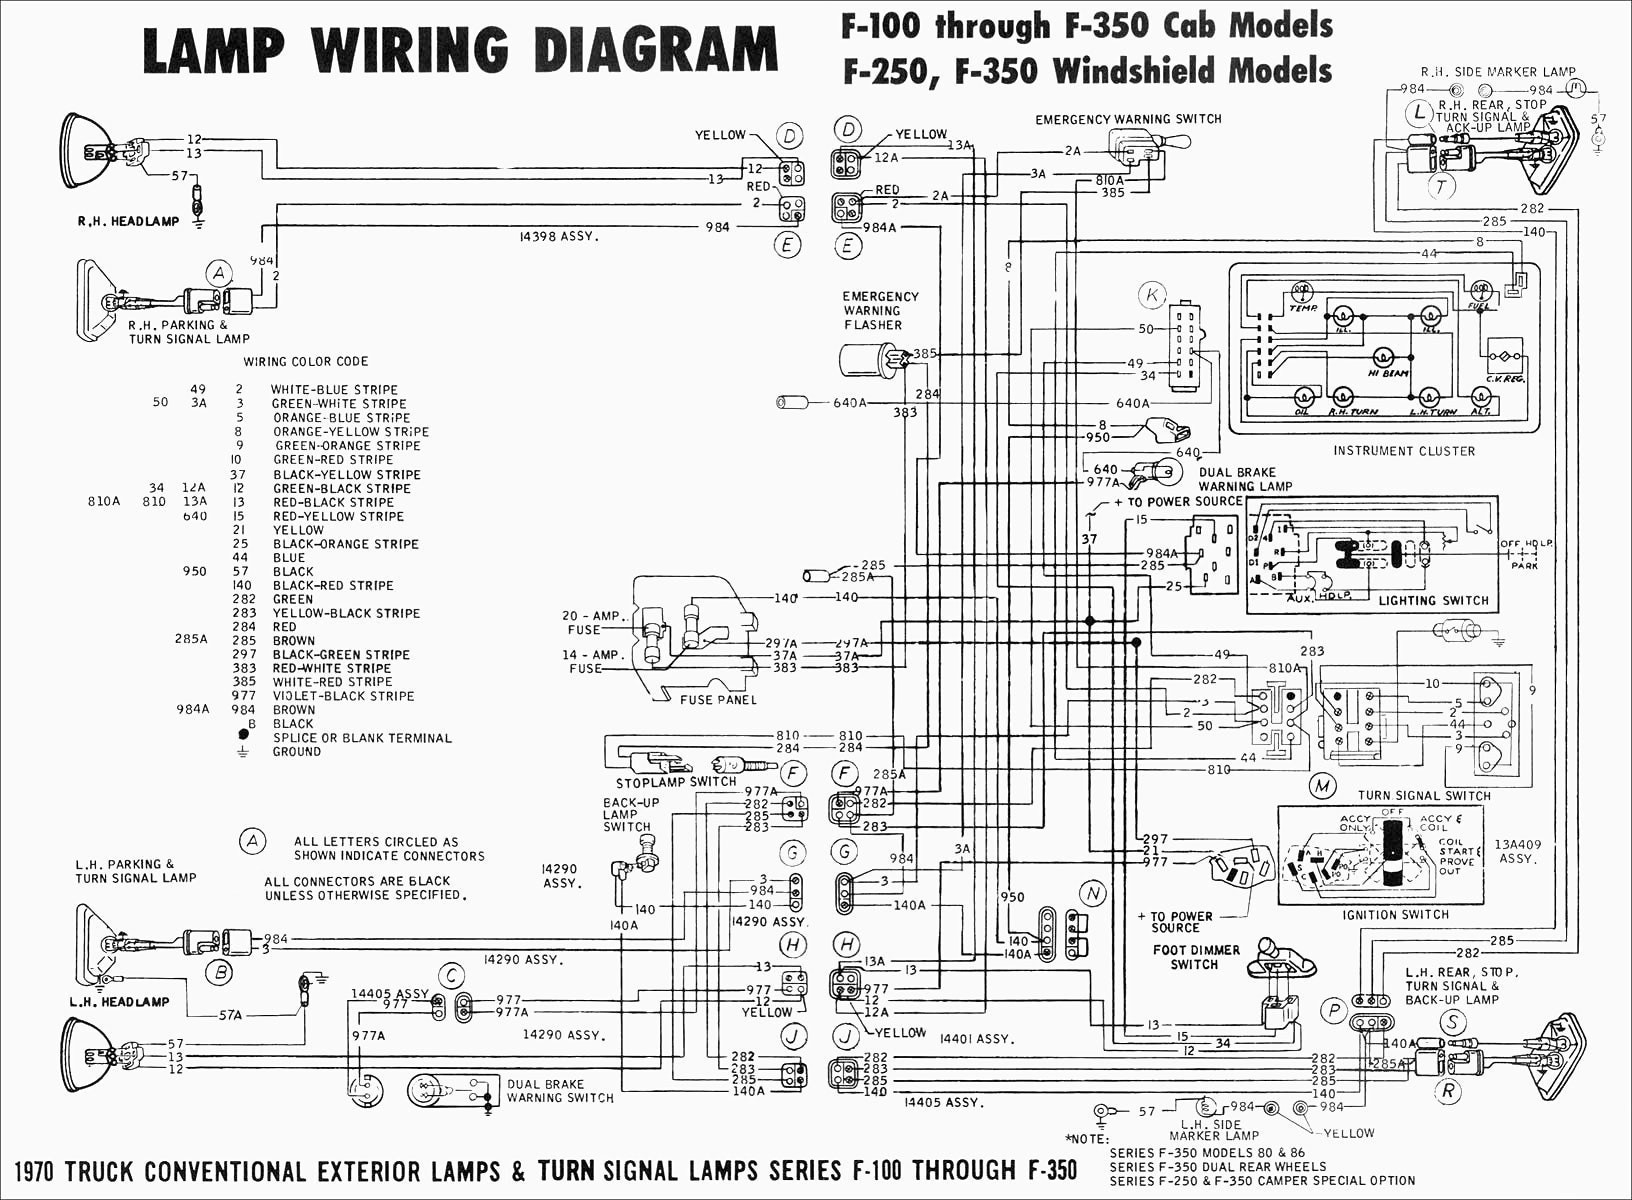 Amp Research Power Step Wiring Diagram Dcac93f Wire Diagram Allis Chalmers B12 Of Amp Research Power Step Wiring Diagram Hoveround Wiring Diagram